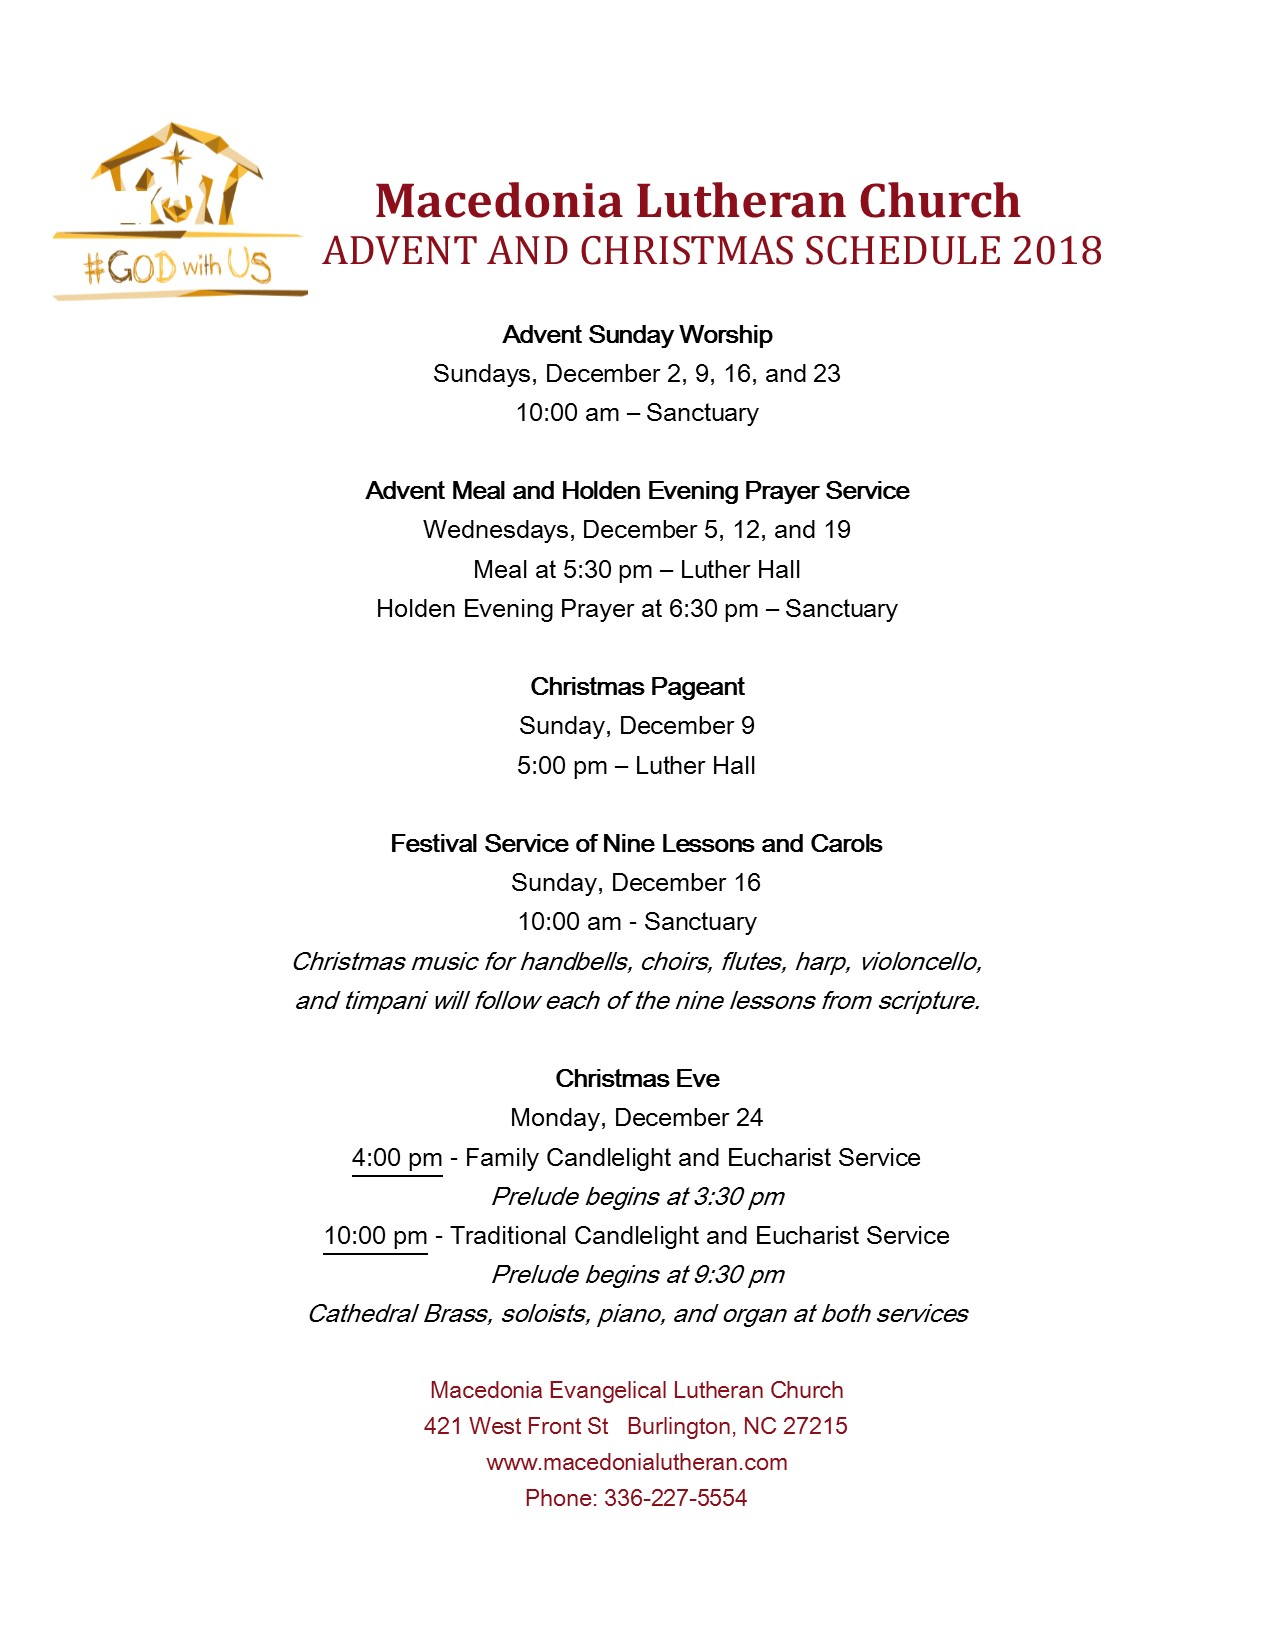 Advent Schedule one page